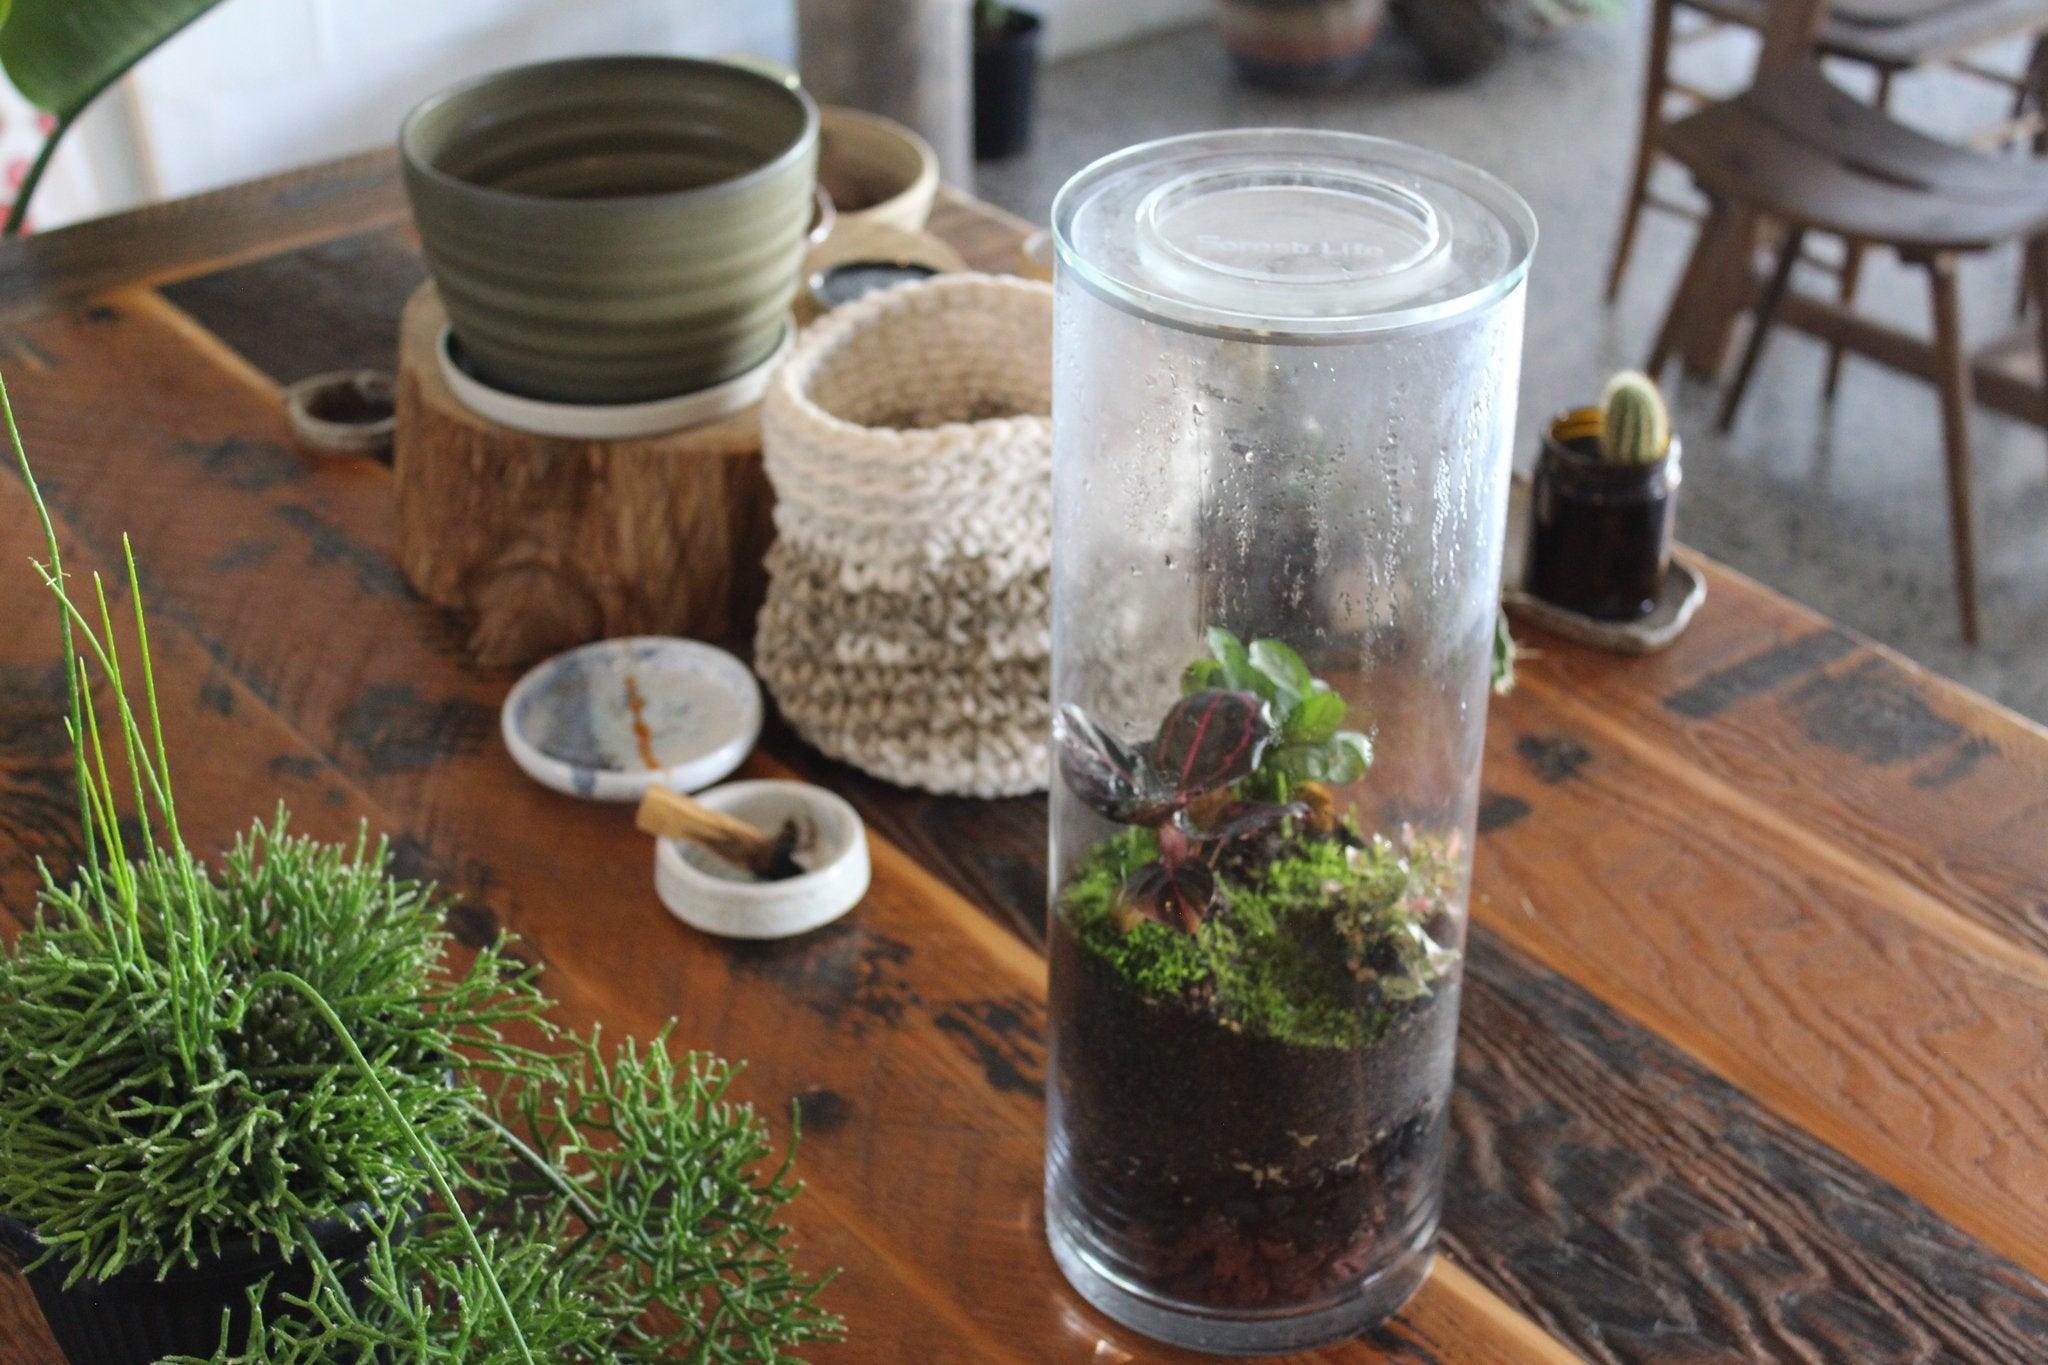 Bring nature indoors with your own unique handcrafted ecosystem. Low maintenaince and clean, a terrarium adds a beautiful living design element to any space with indirect sunlight.